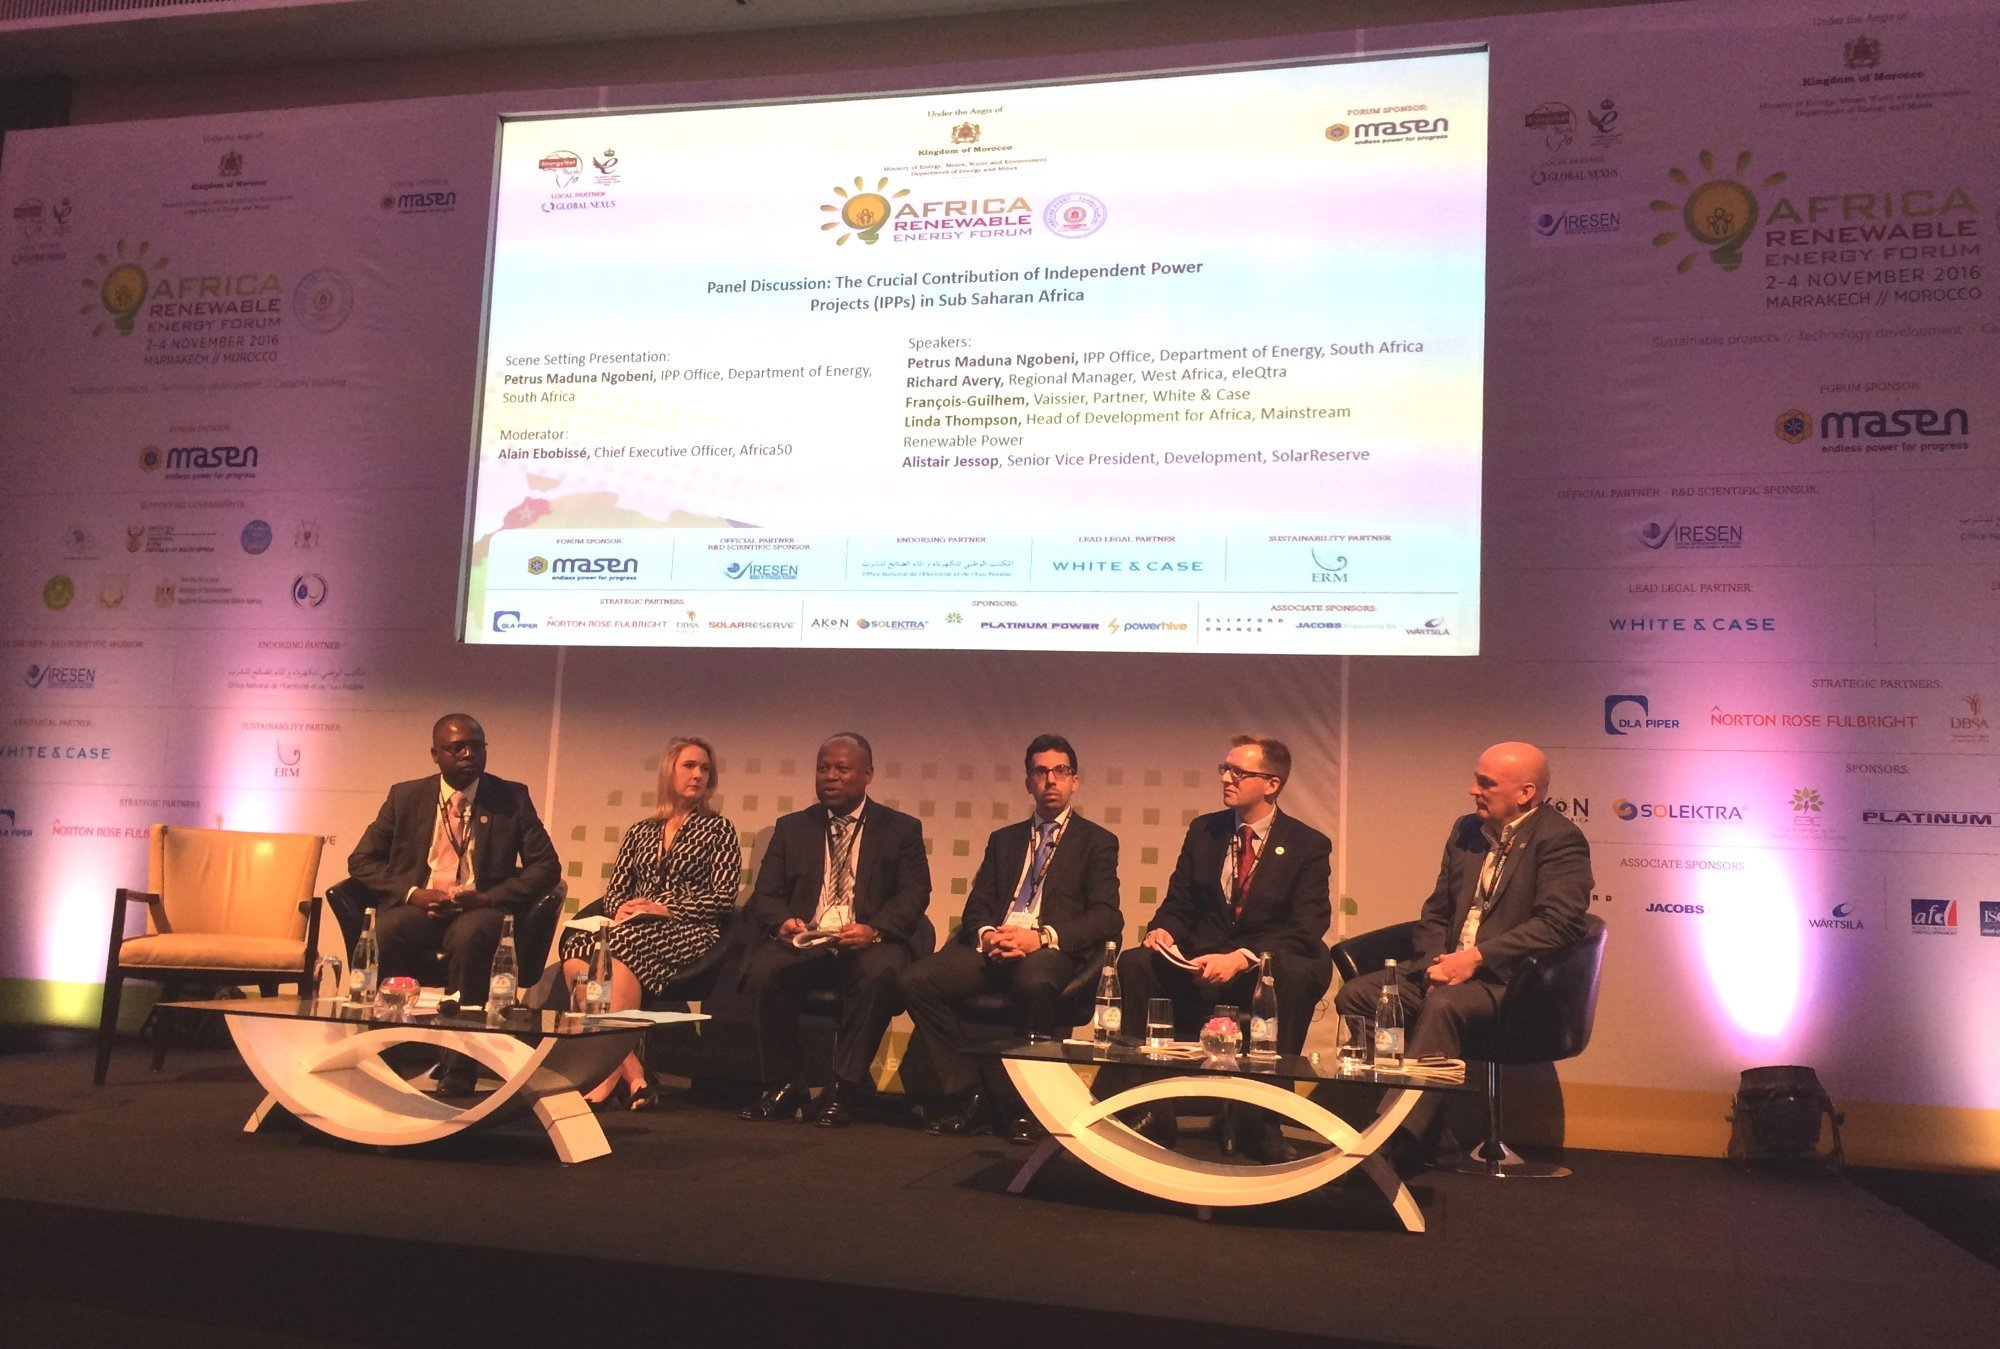 Photo of panel at ndependent Power Projects (IPP) at the Africa Renewable Energy Forum